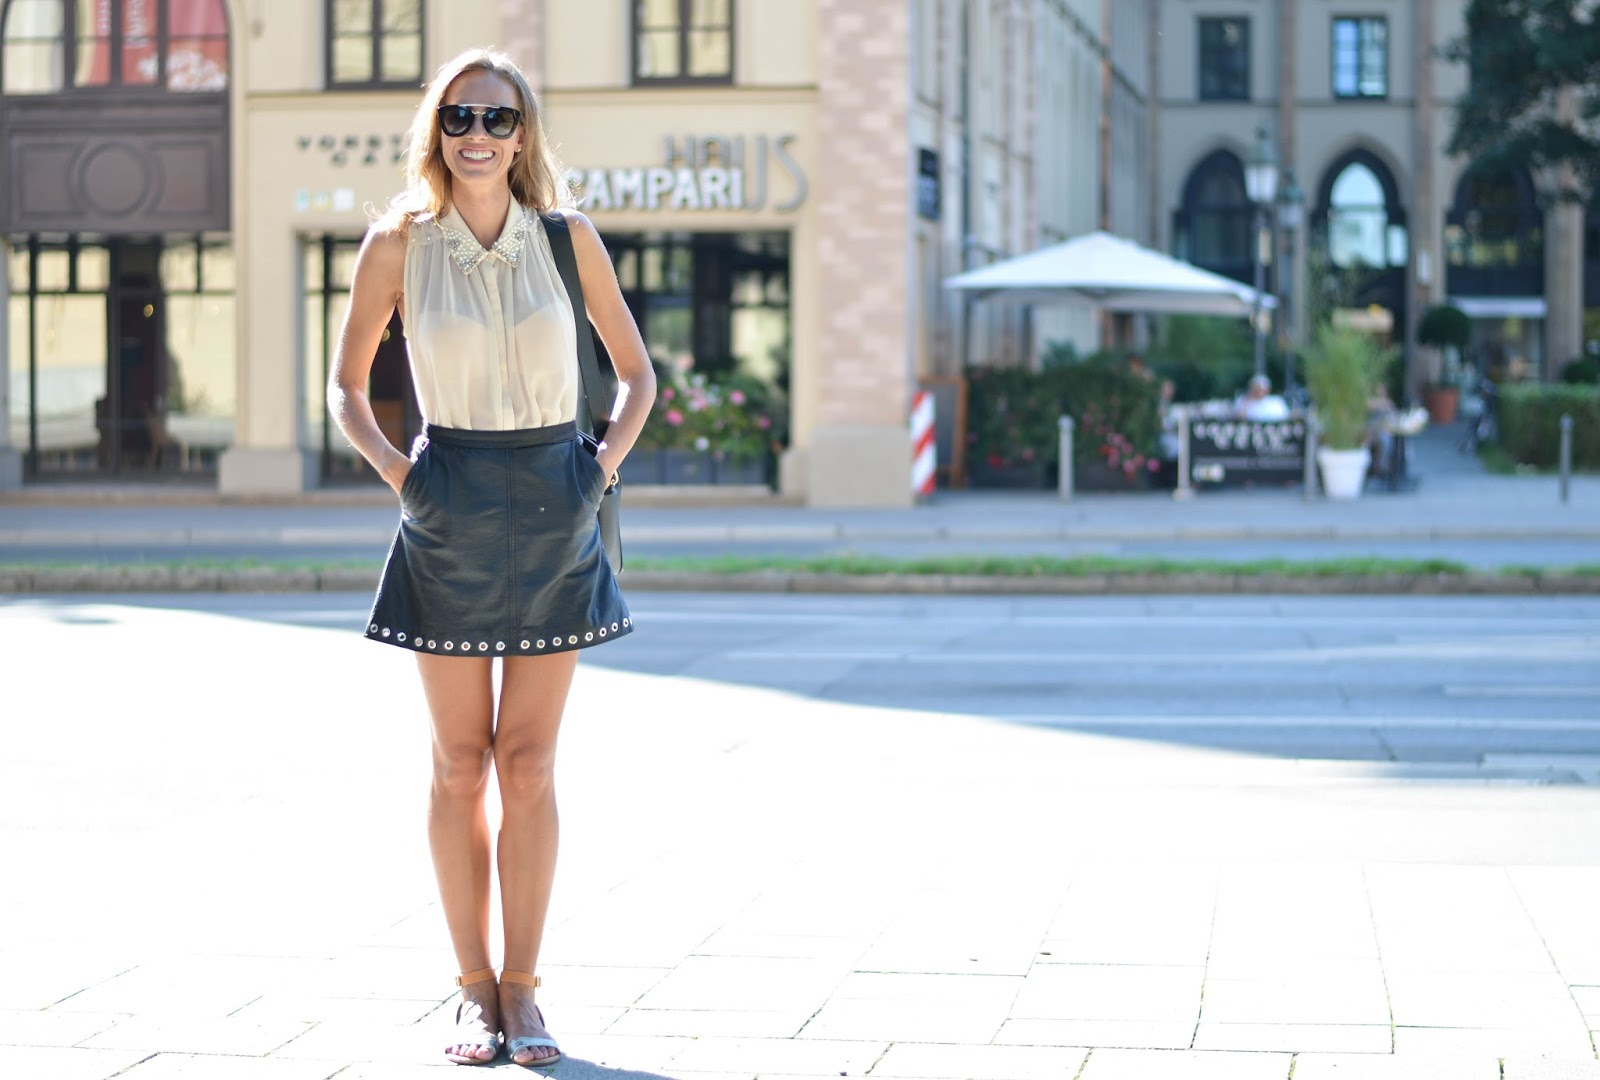 kristjaana mere nude top leather skirt summer outfit munich street style